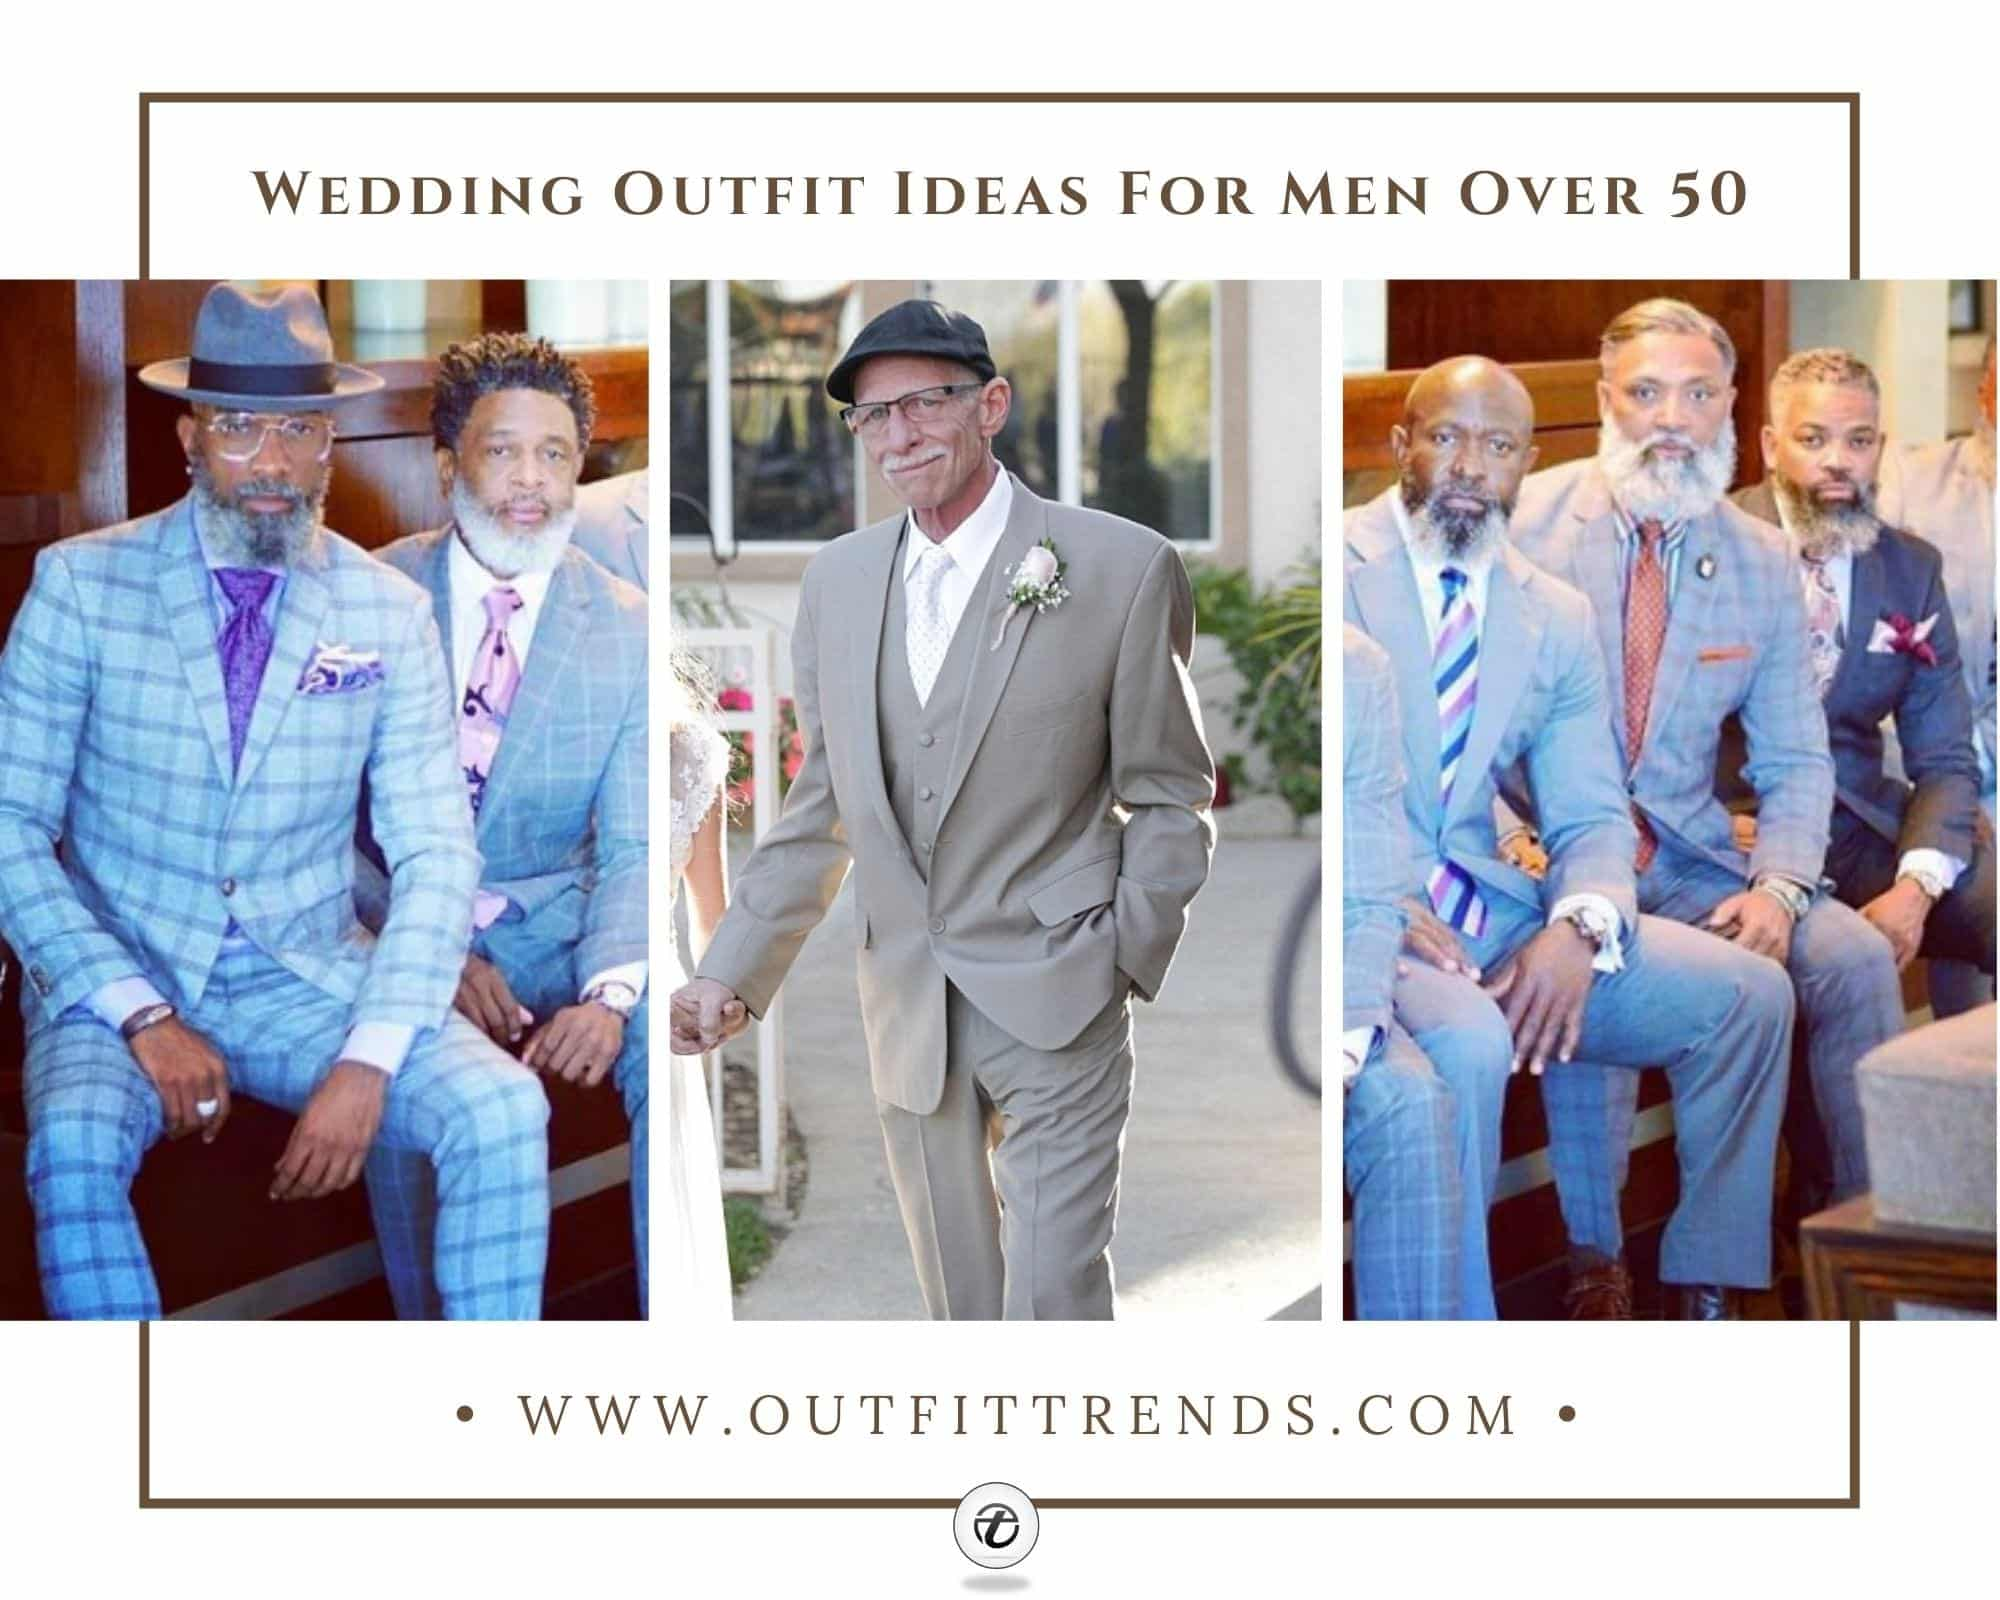 20 Wedding Outfits For Men Over 50:What to Wear to a Wedding